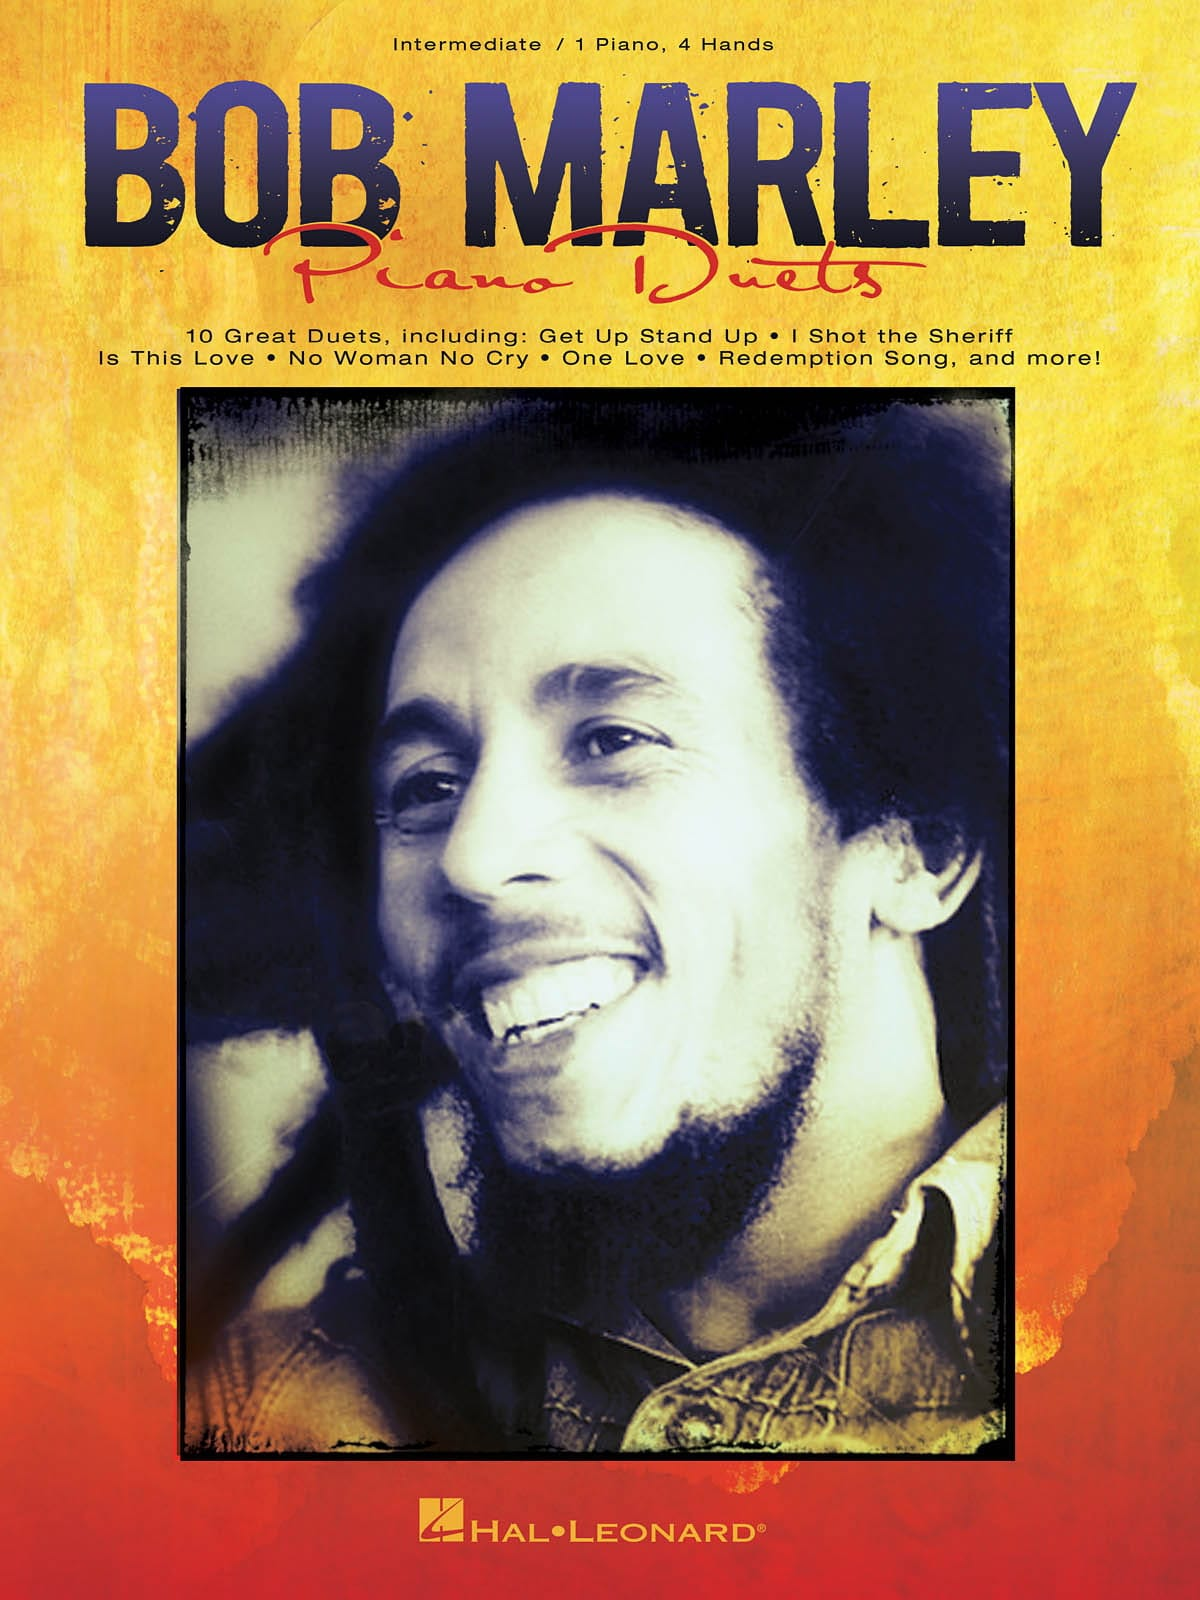 Bob Marley for Piano Duets - Bob Marley - Partition - laflutedepan.com